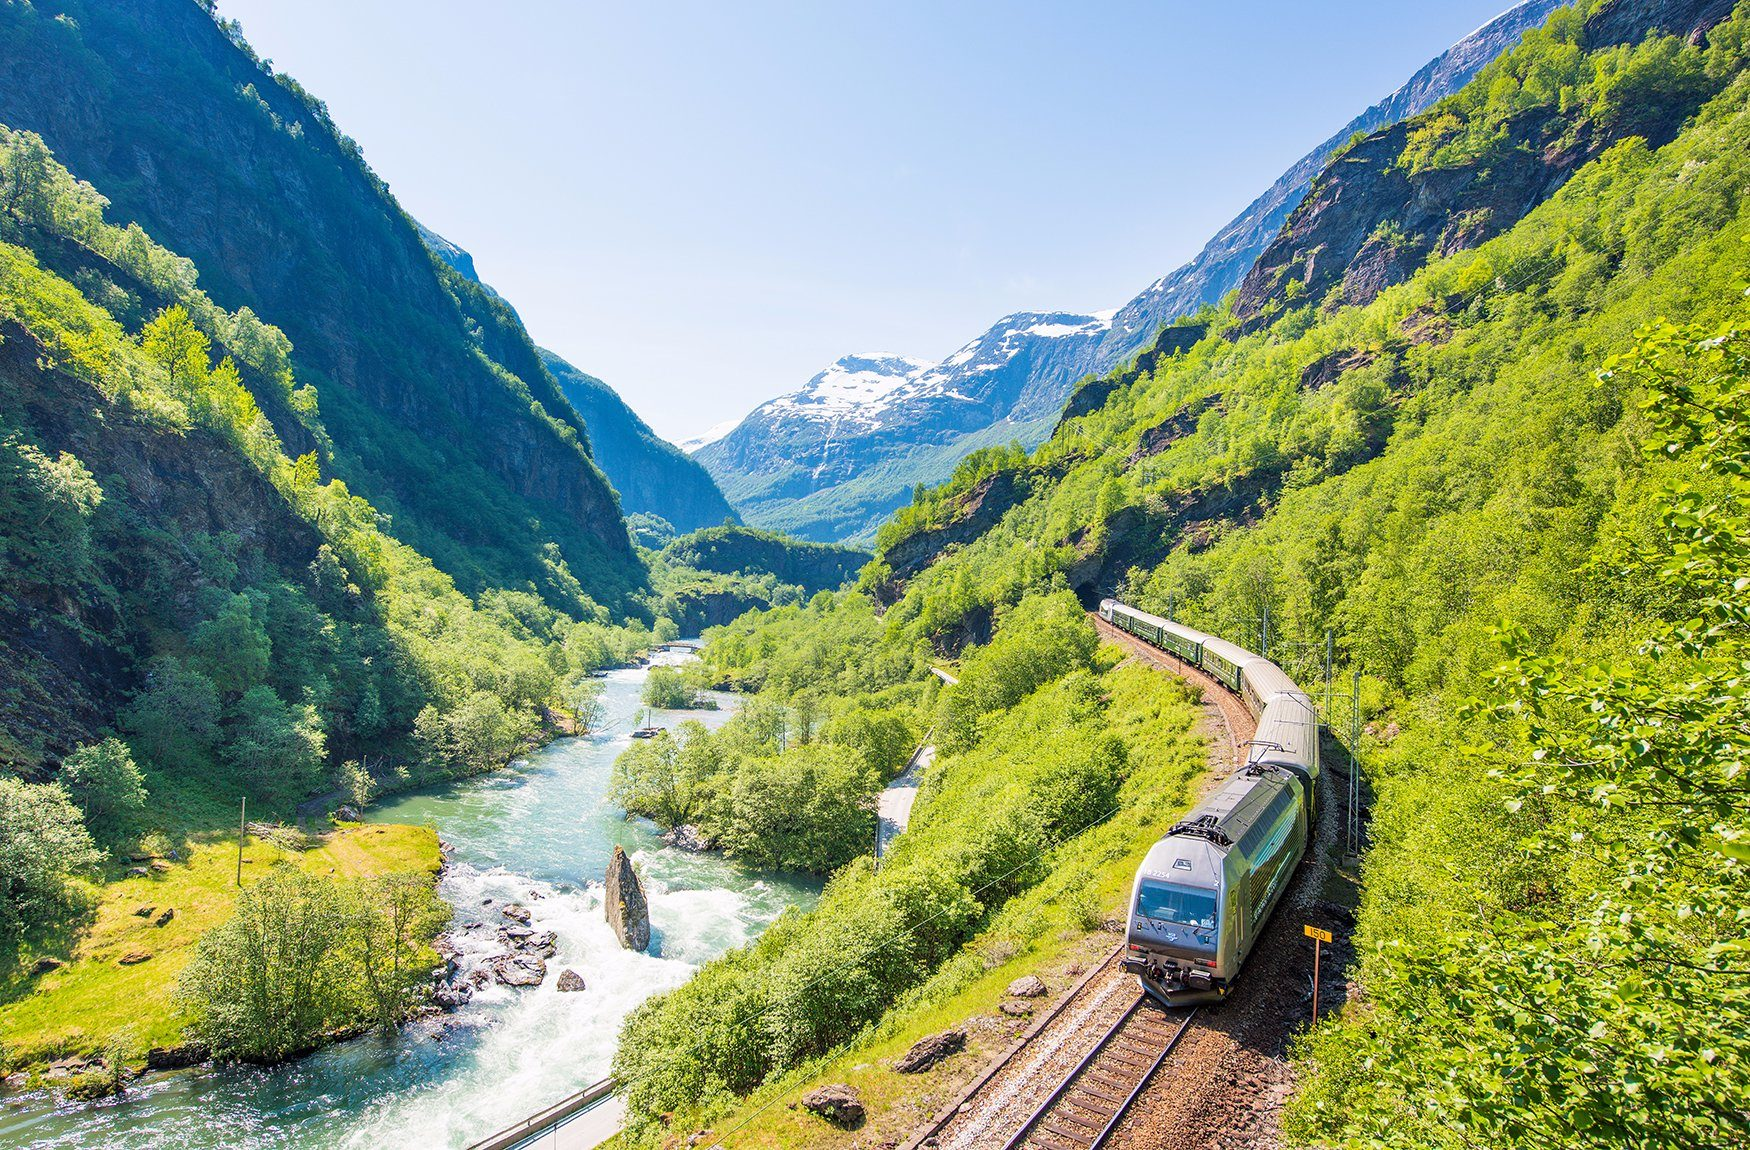 Flam to Myrdal train travel valley and mountains and rivers